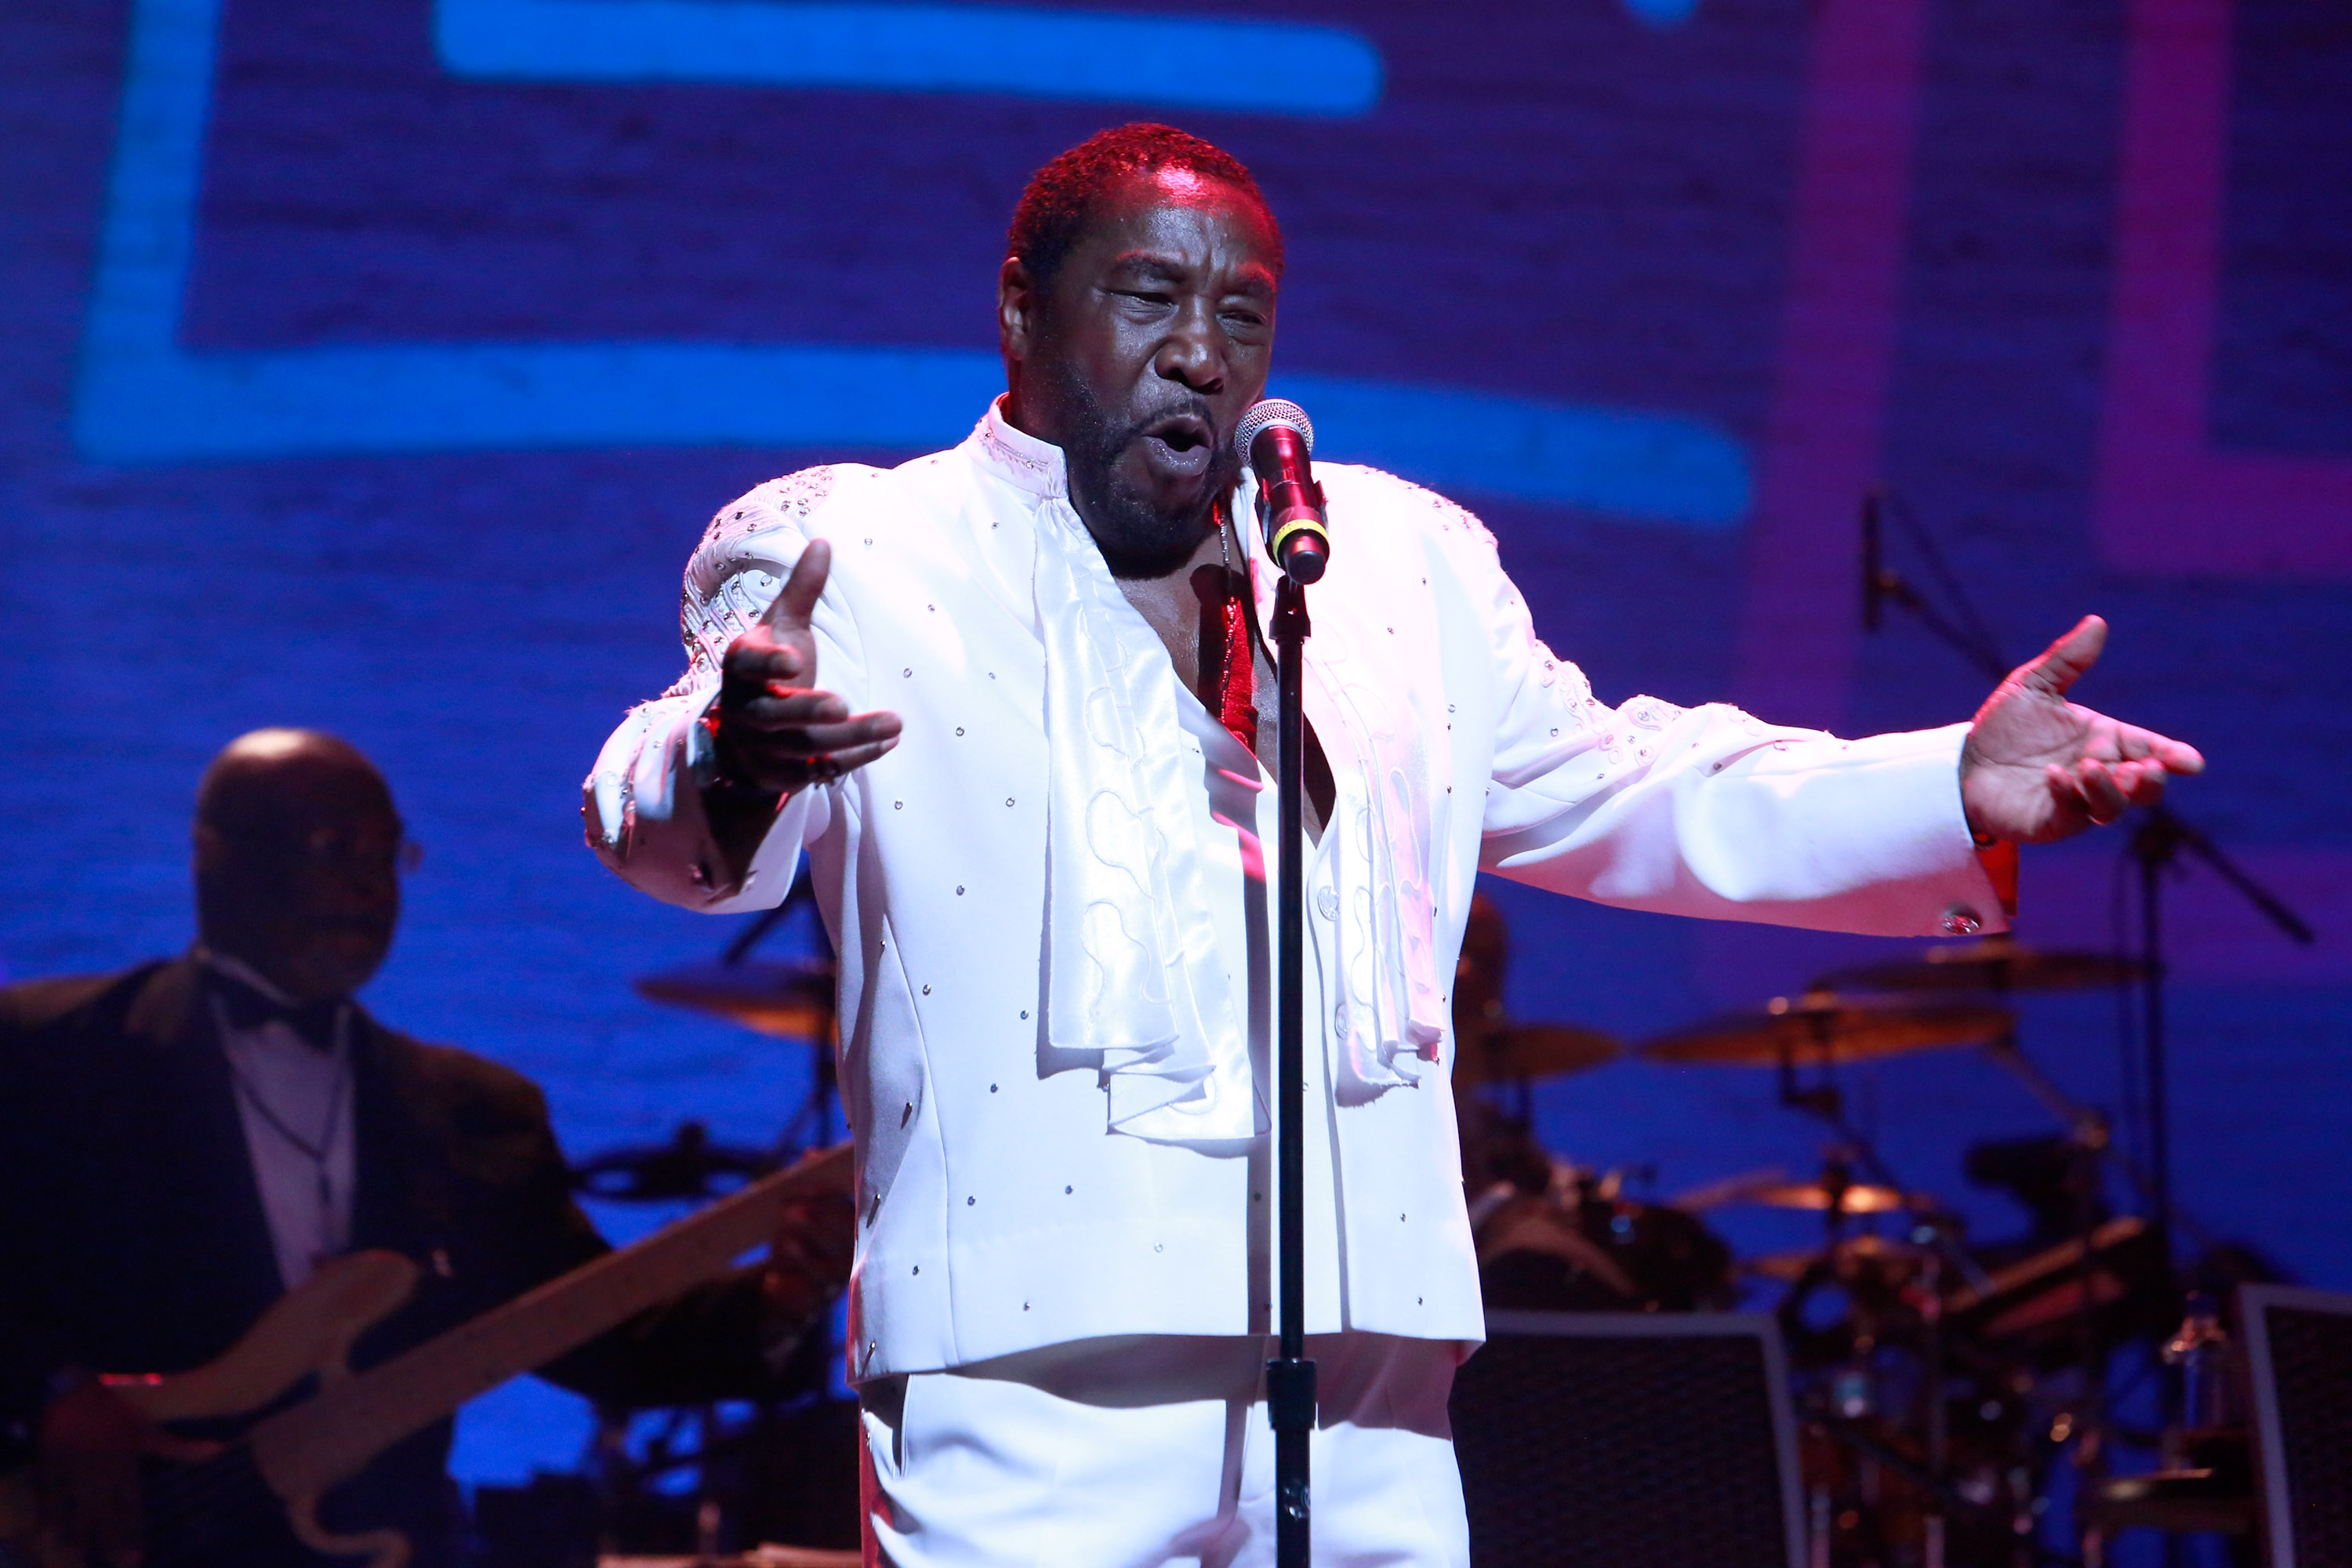 NEW YORK, NY - JUNE 13: Eddie Levert of The O'Jays preforms during Prince Walk of Fame Induction and 2016 Spring Gala at The Apollo Theater on June 13, 2016 in New York City. (Photo by Shahar Azran/WireImage)